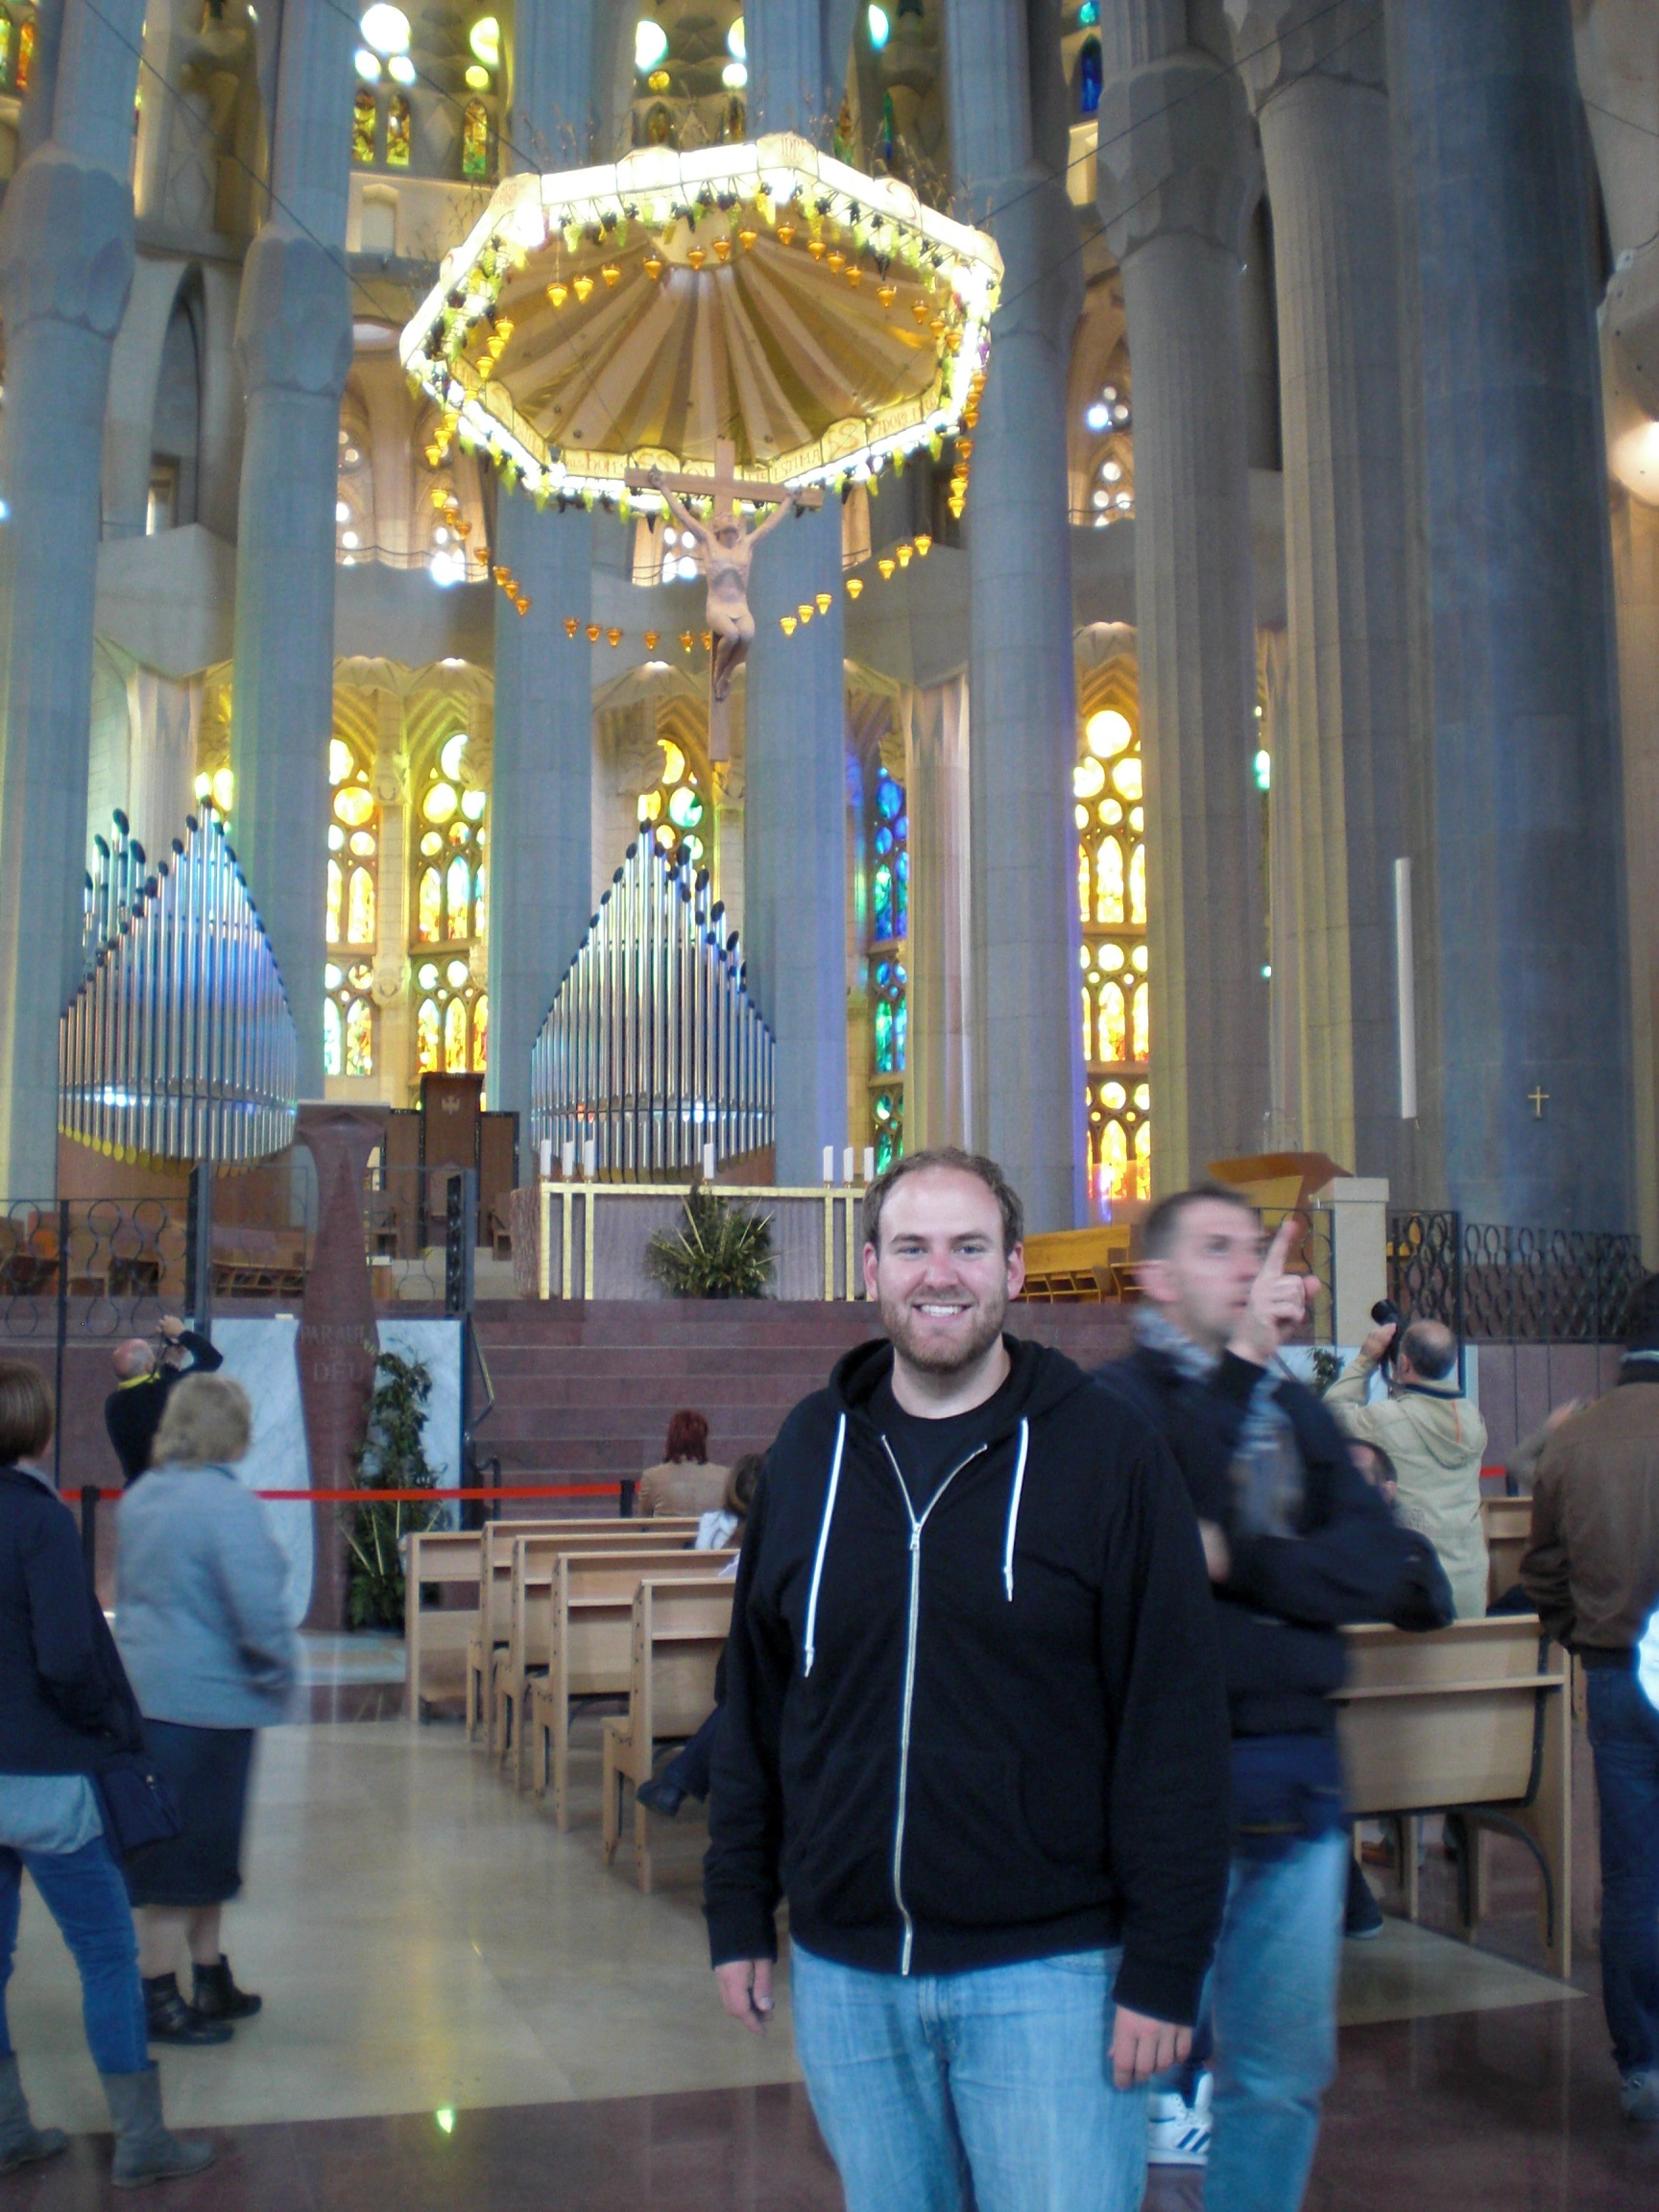 me-in-front-of-the-alter